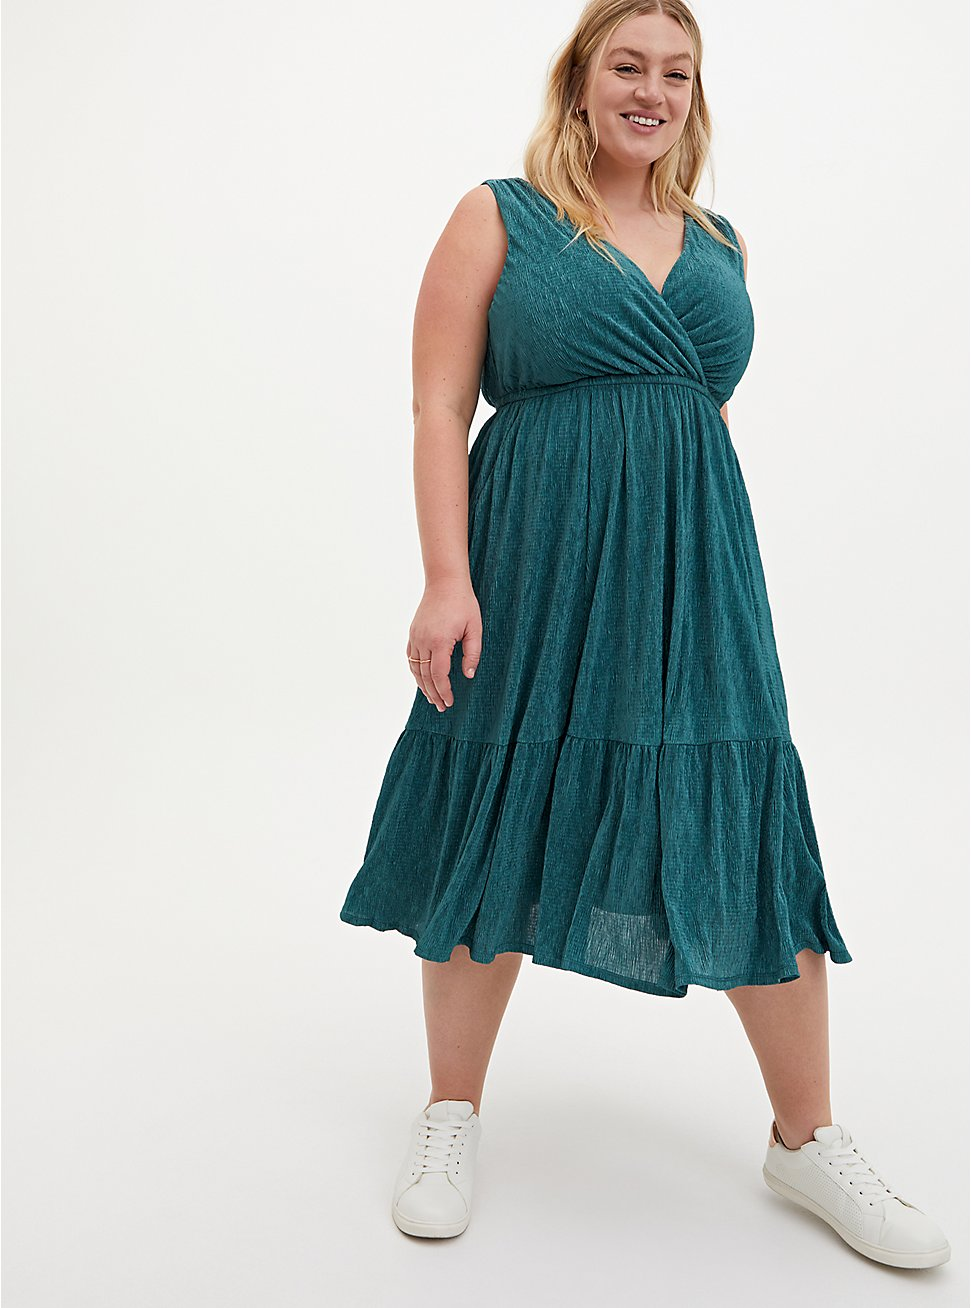 Pine Green Crinkle Knit Surplice Midi Skater Dress, SILVER PINE, hi-res